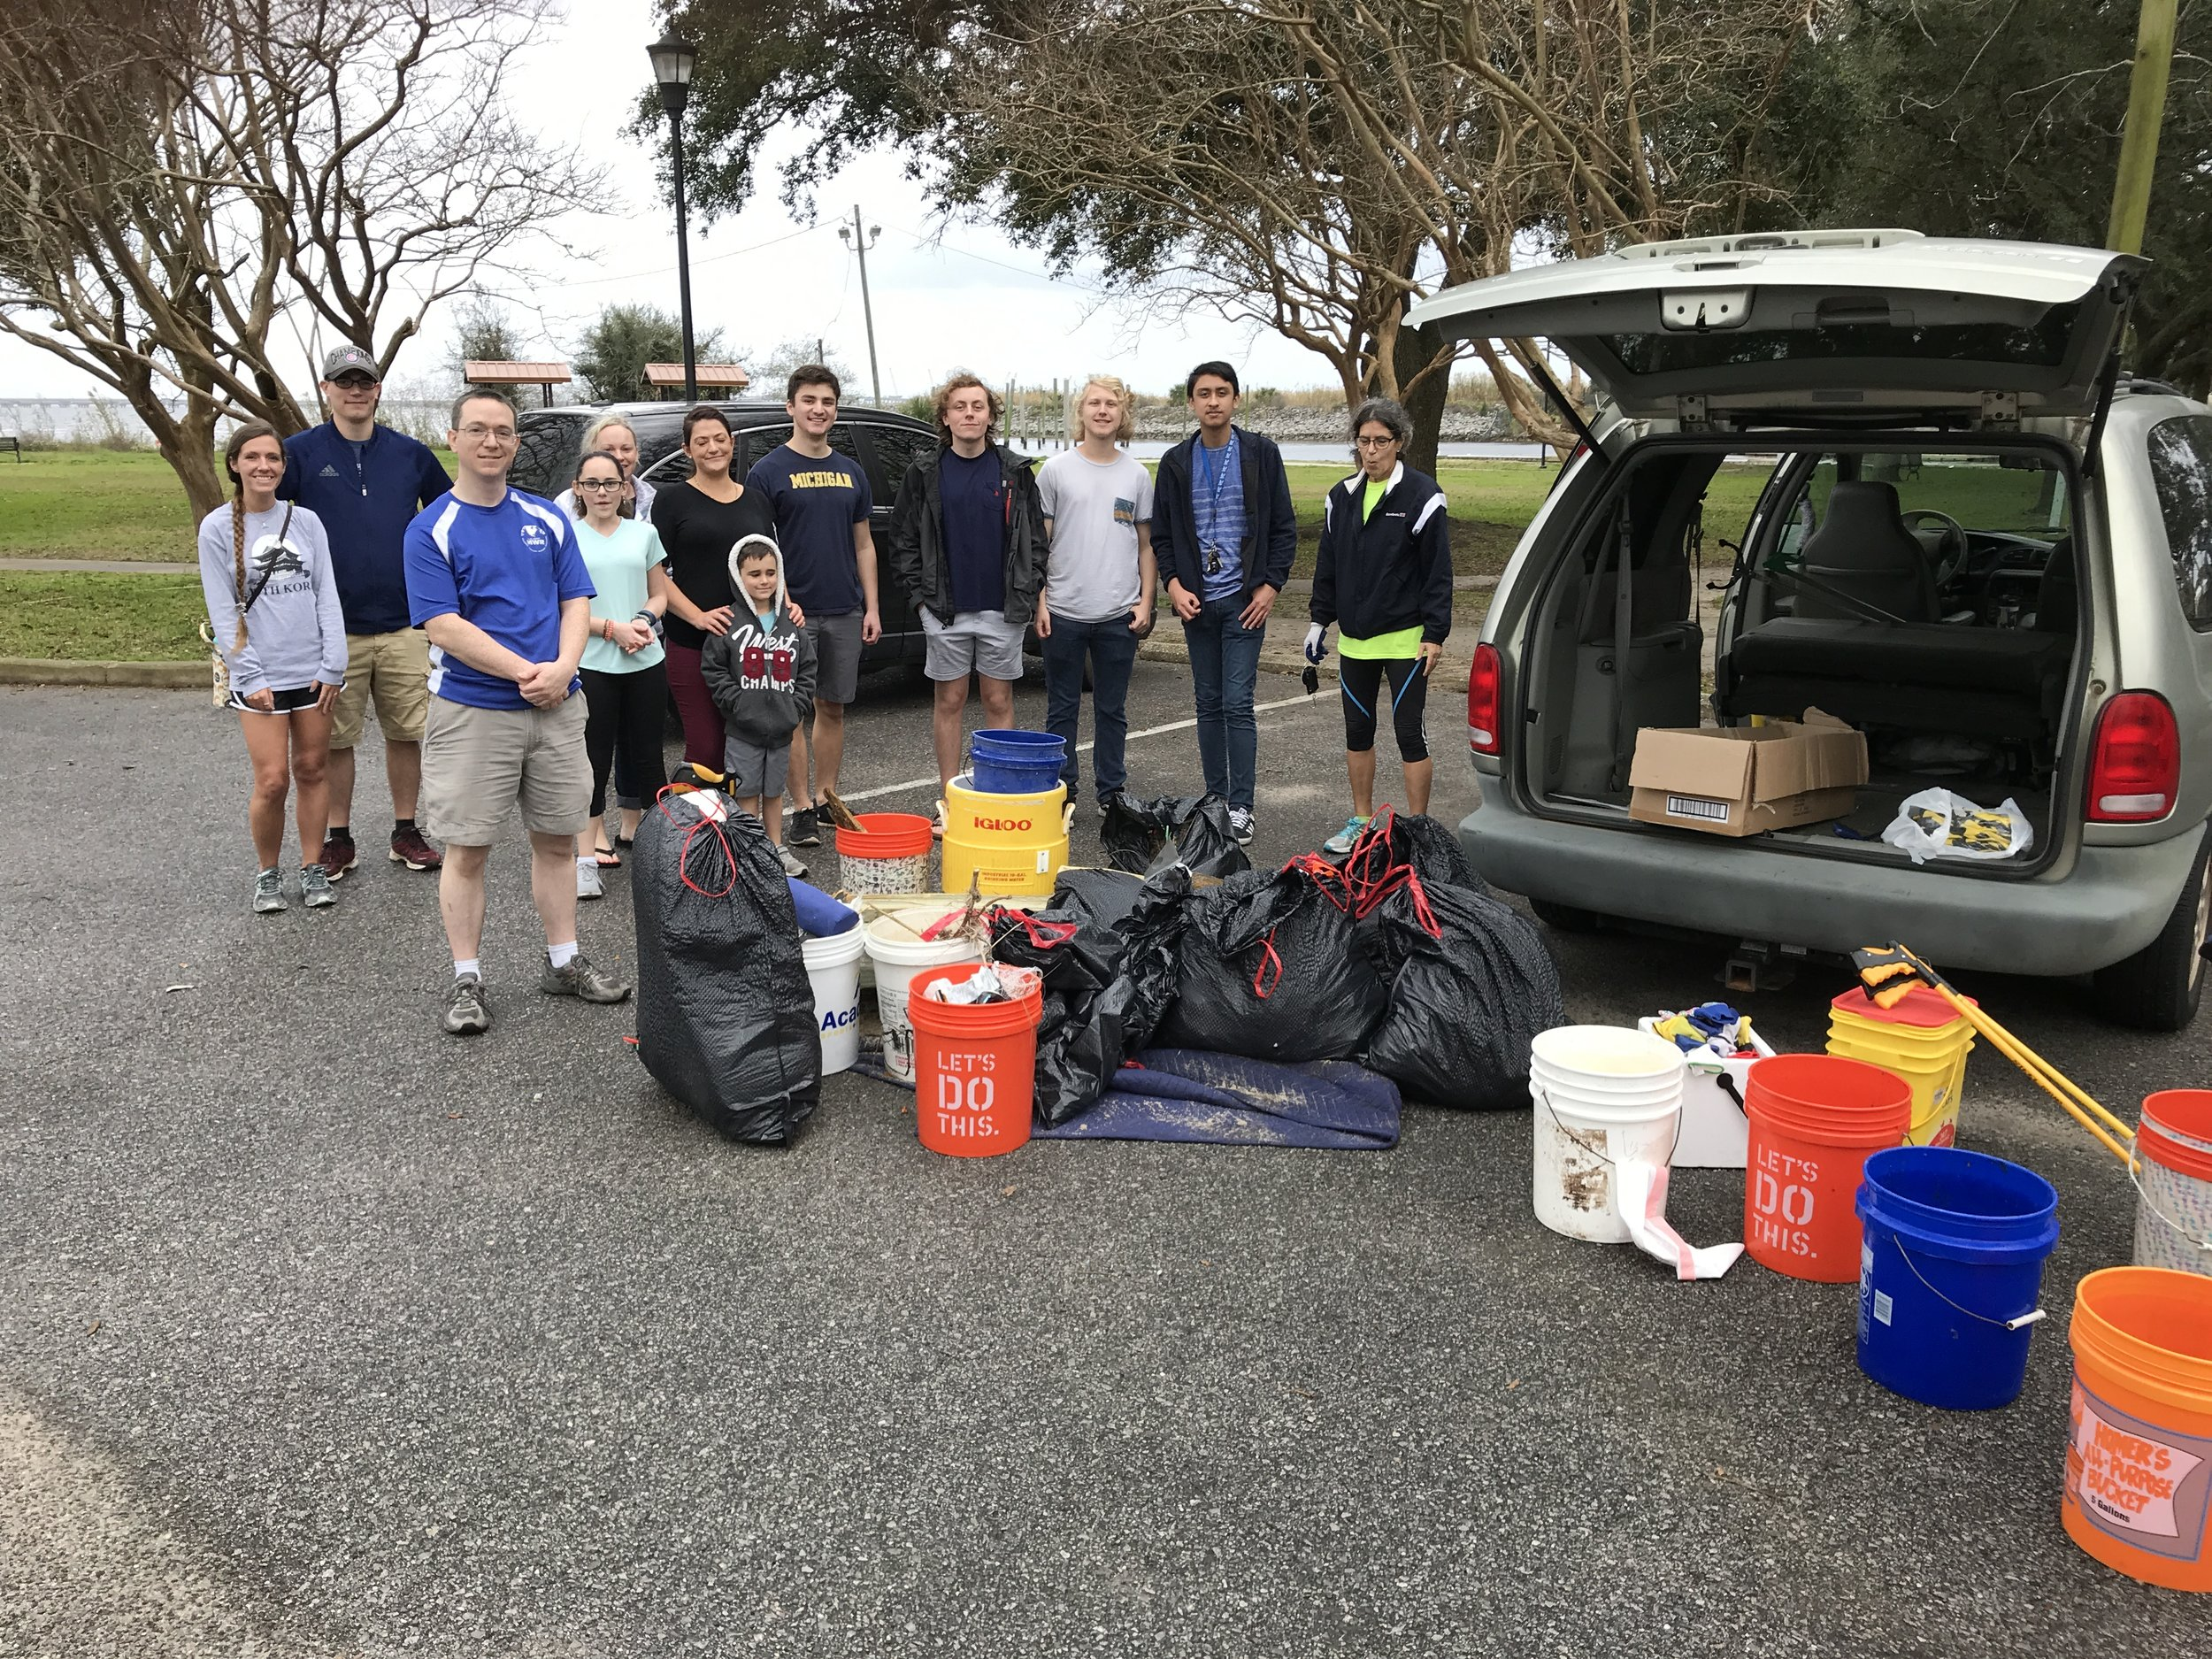 - UWF students and Caldwell Bankers were part of 22 volunteers at Bartram Park (223 lbs). A further 45 volunteers picked up 316 lbs at Wayside park - over 2,000 lbs so far this month